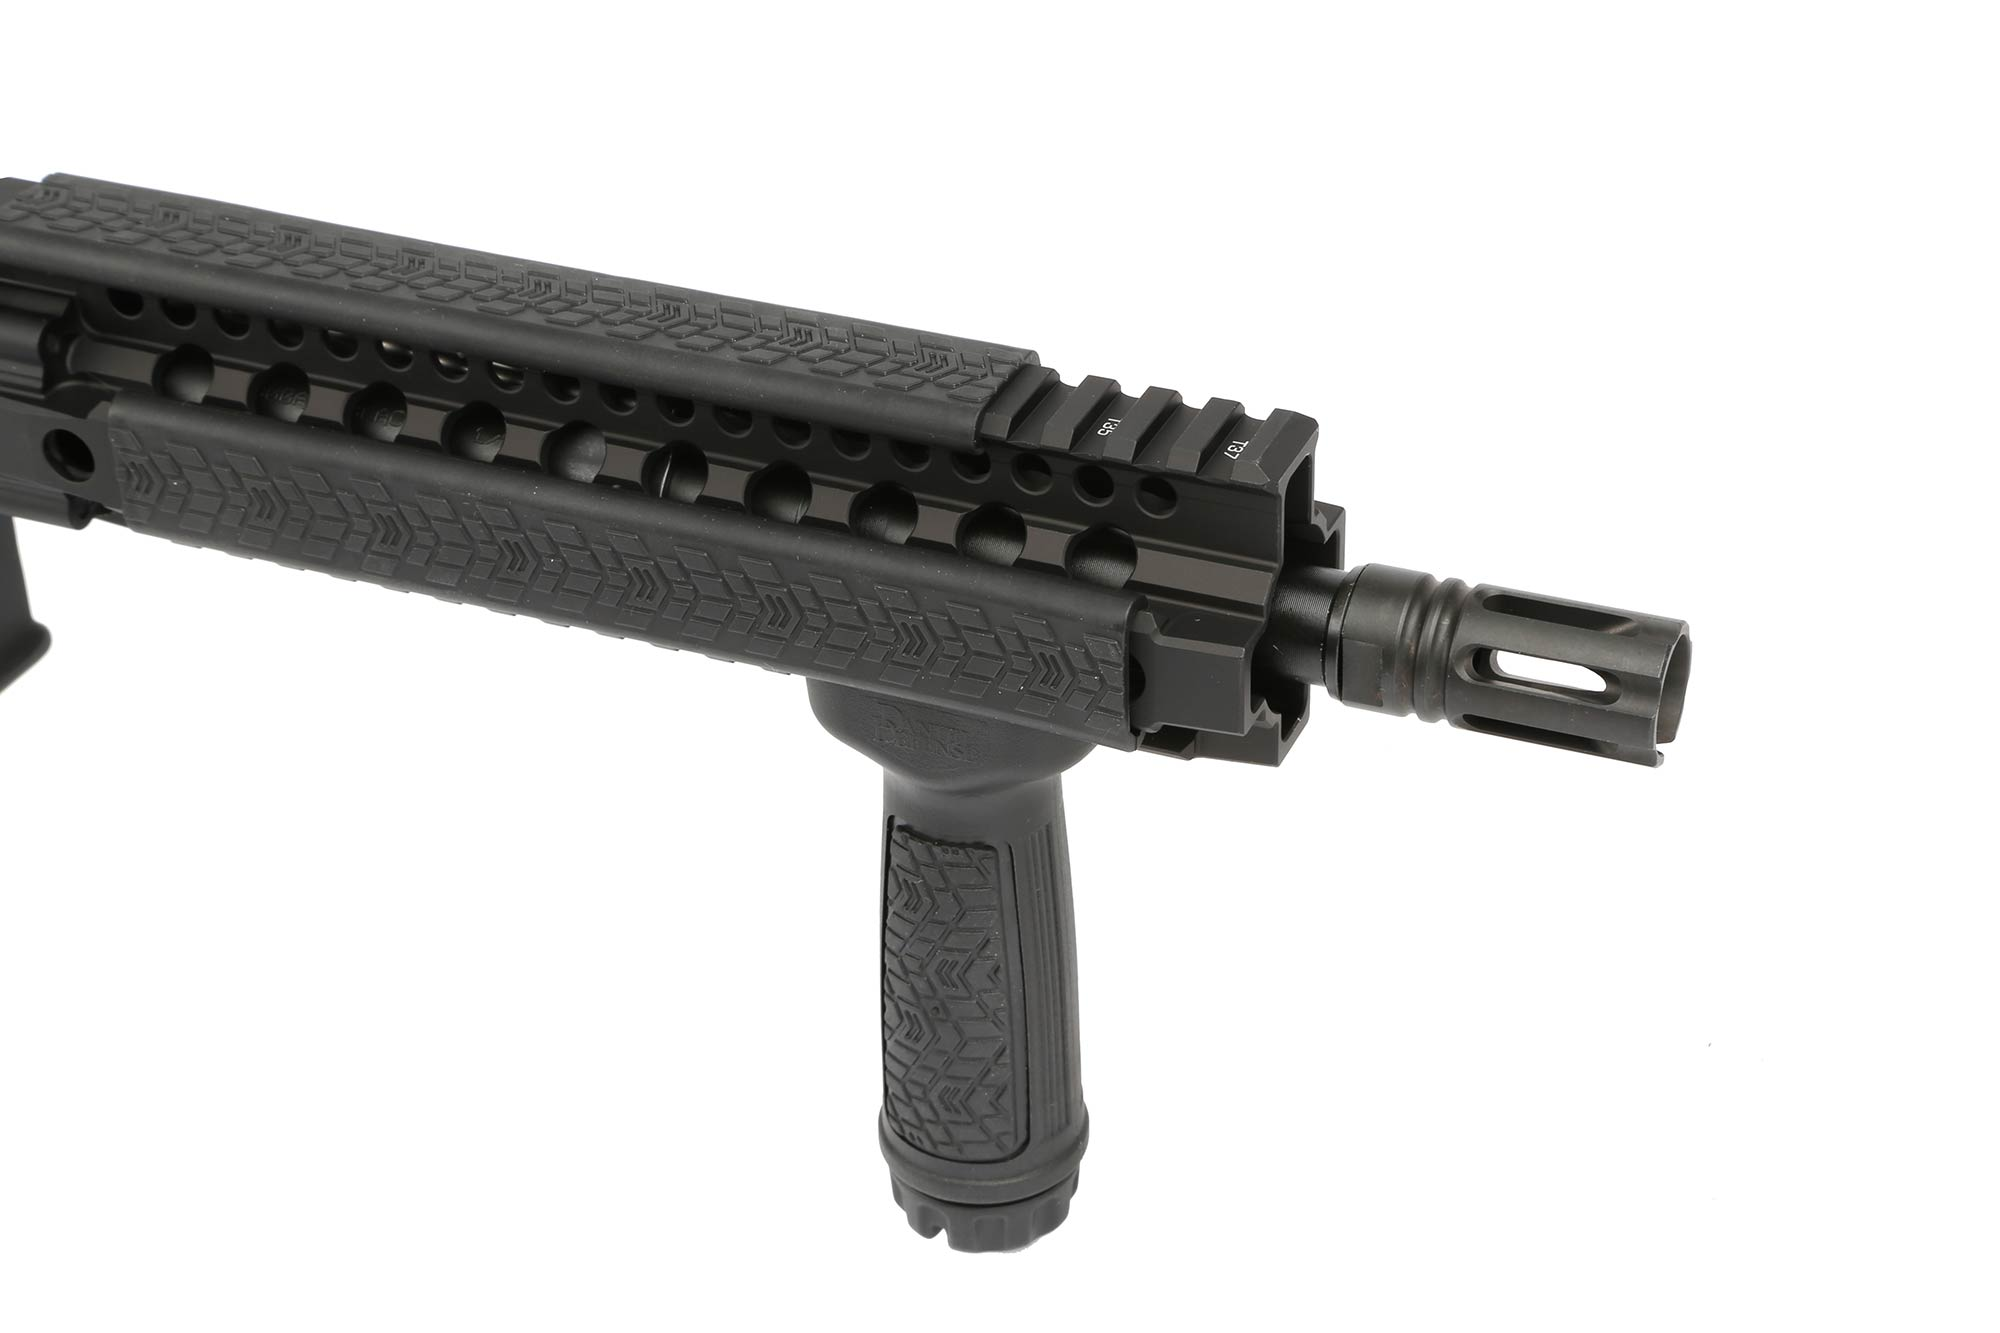 The Daniel Defense MK18 300 BLK AR15 comes with rail covers and a verticle foregrip